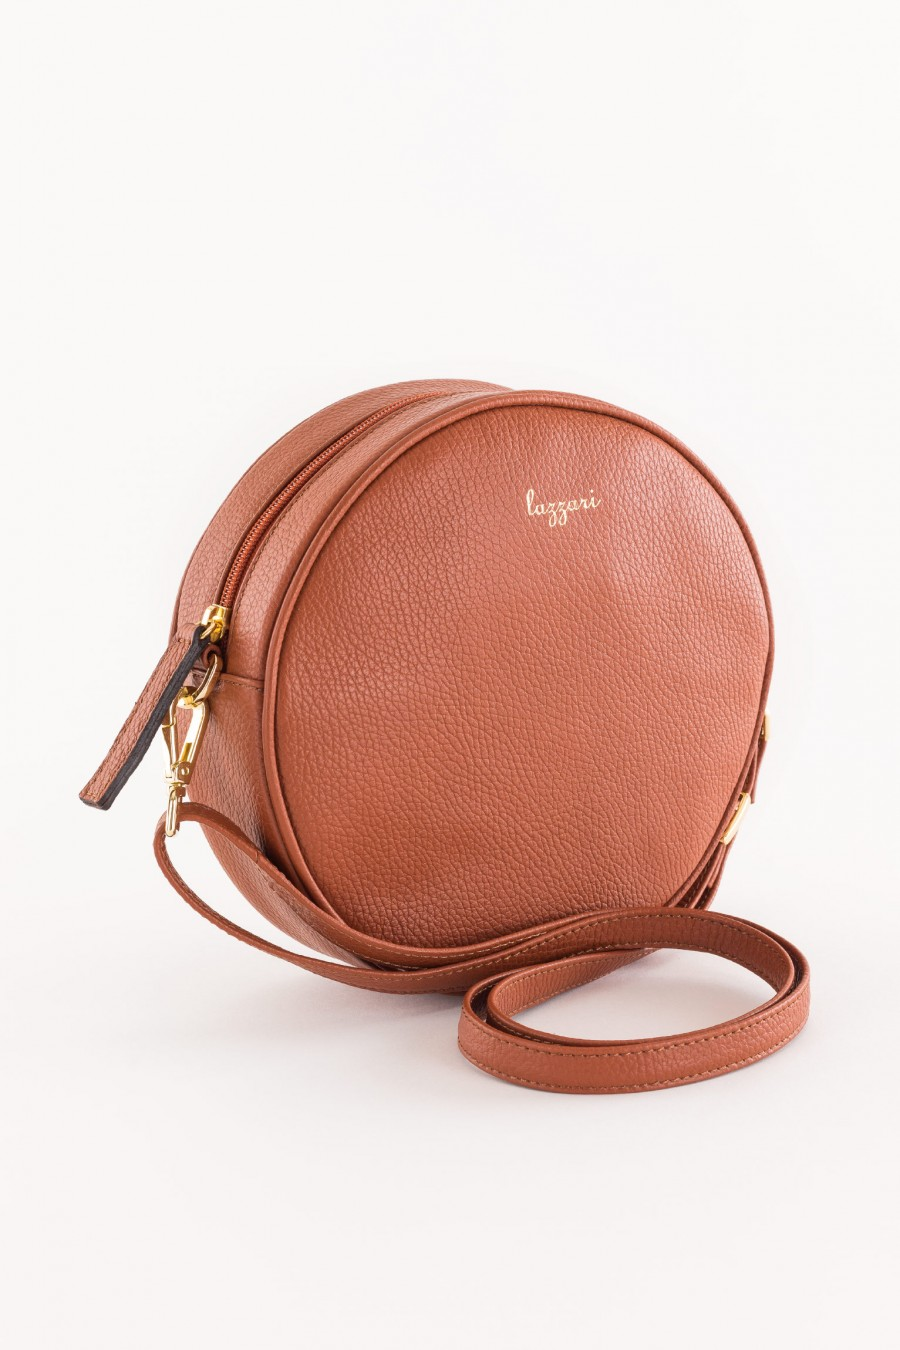 leather-colored bag